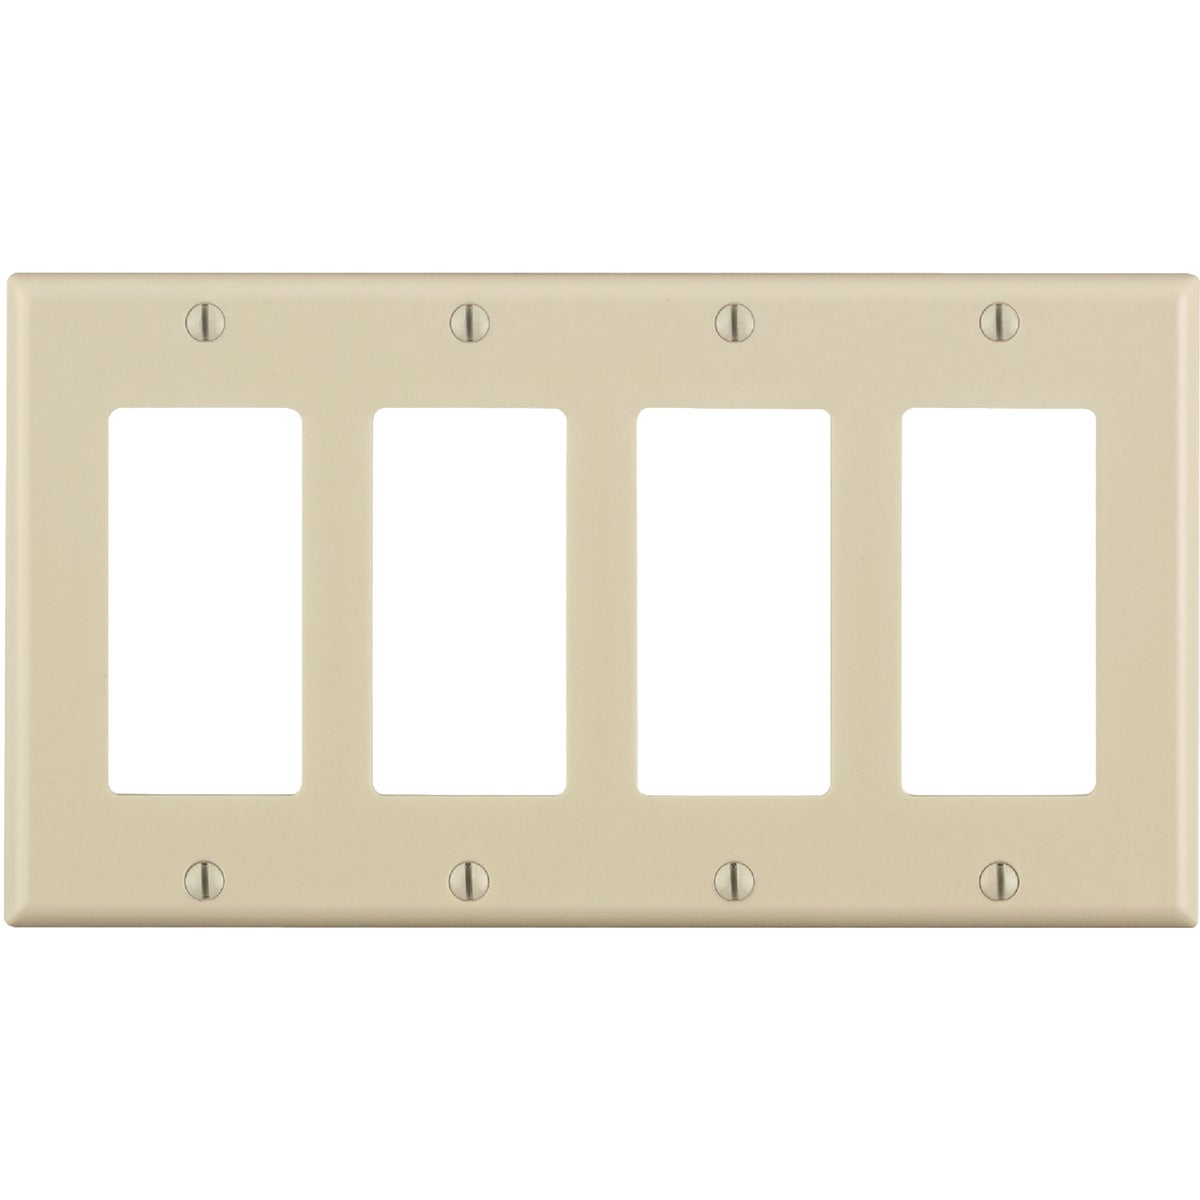 LT ALM GFI WALLPLATE - 011-80412-OOT by Leviton Mfg Co